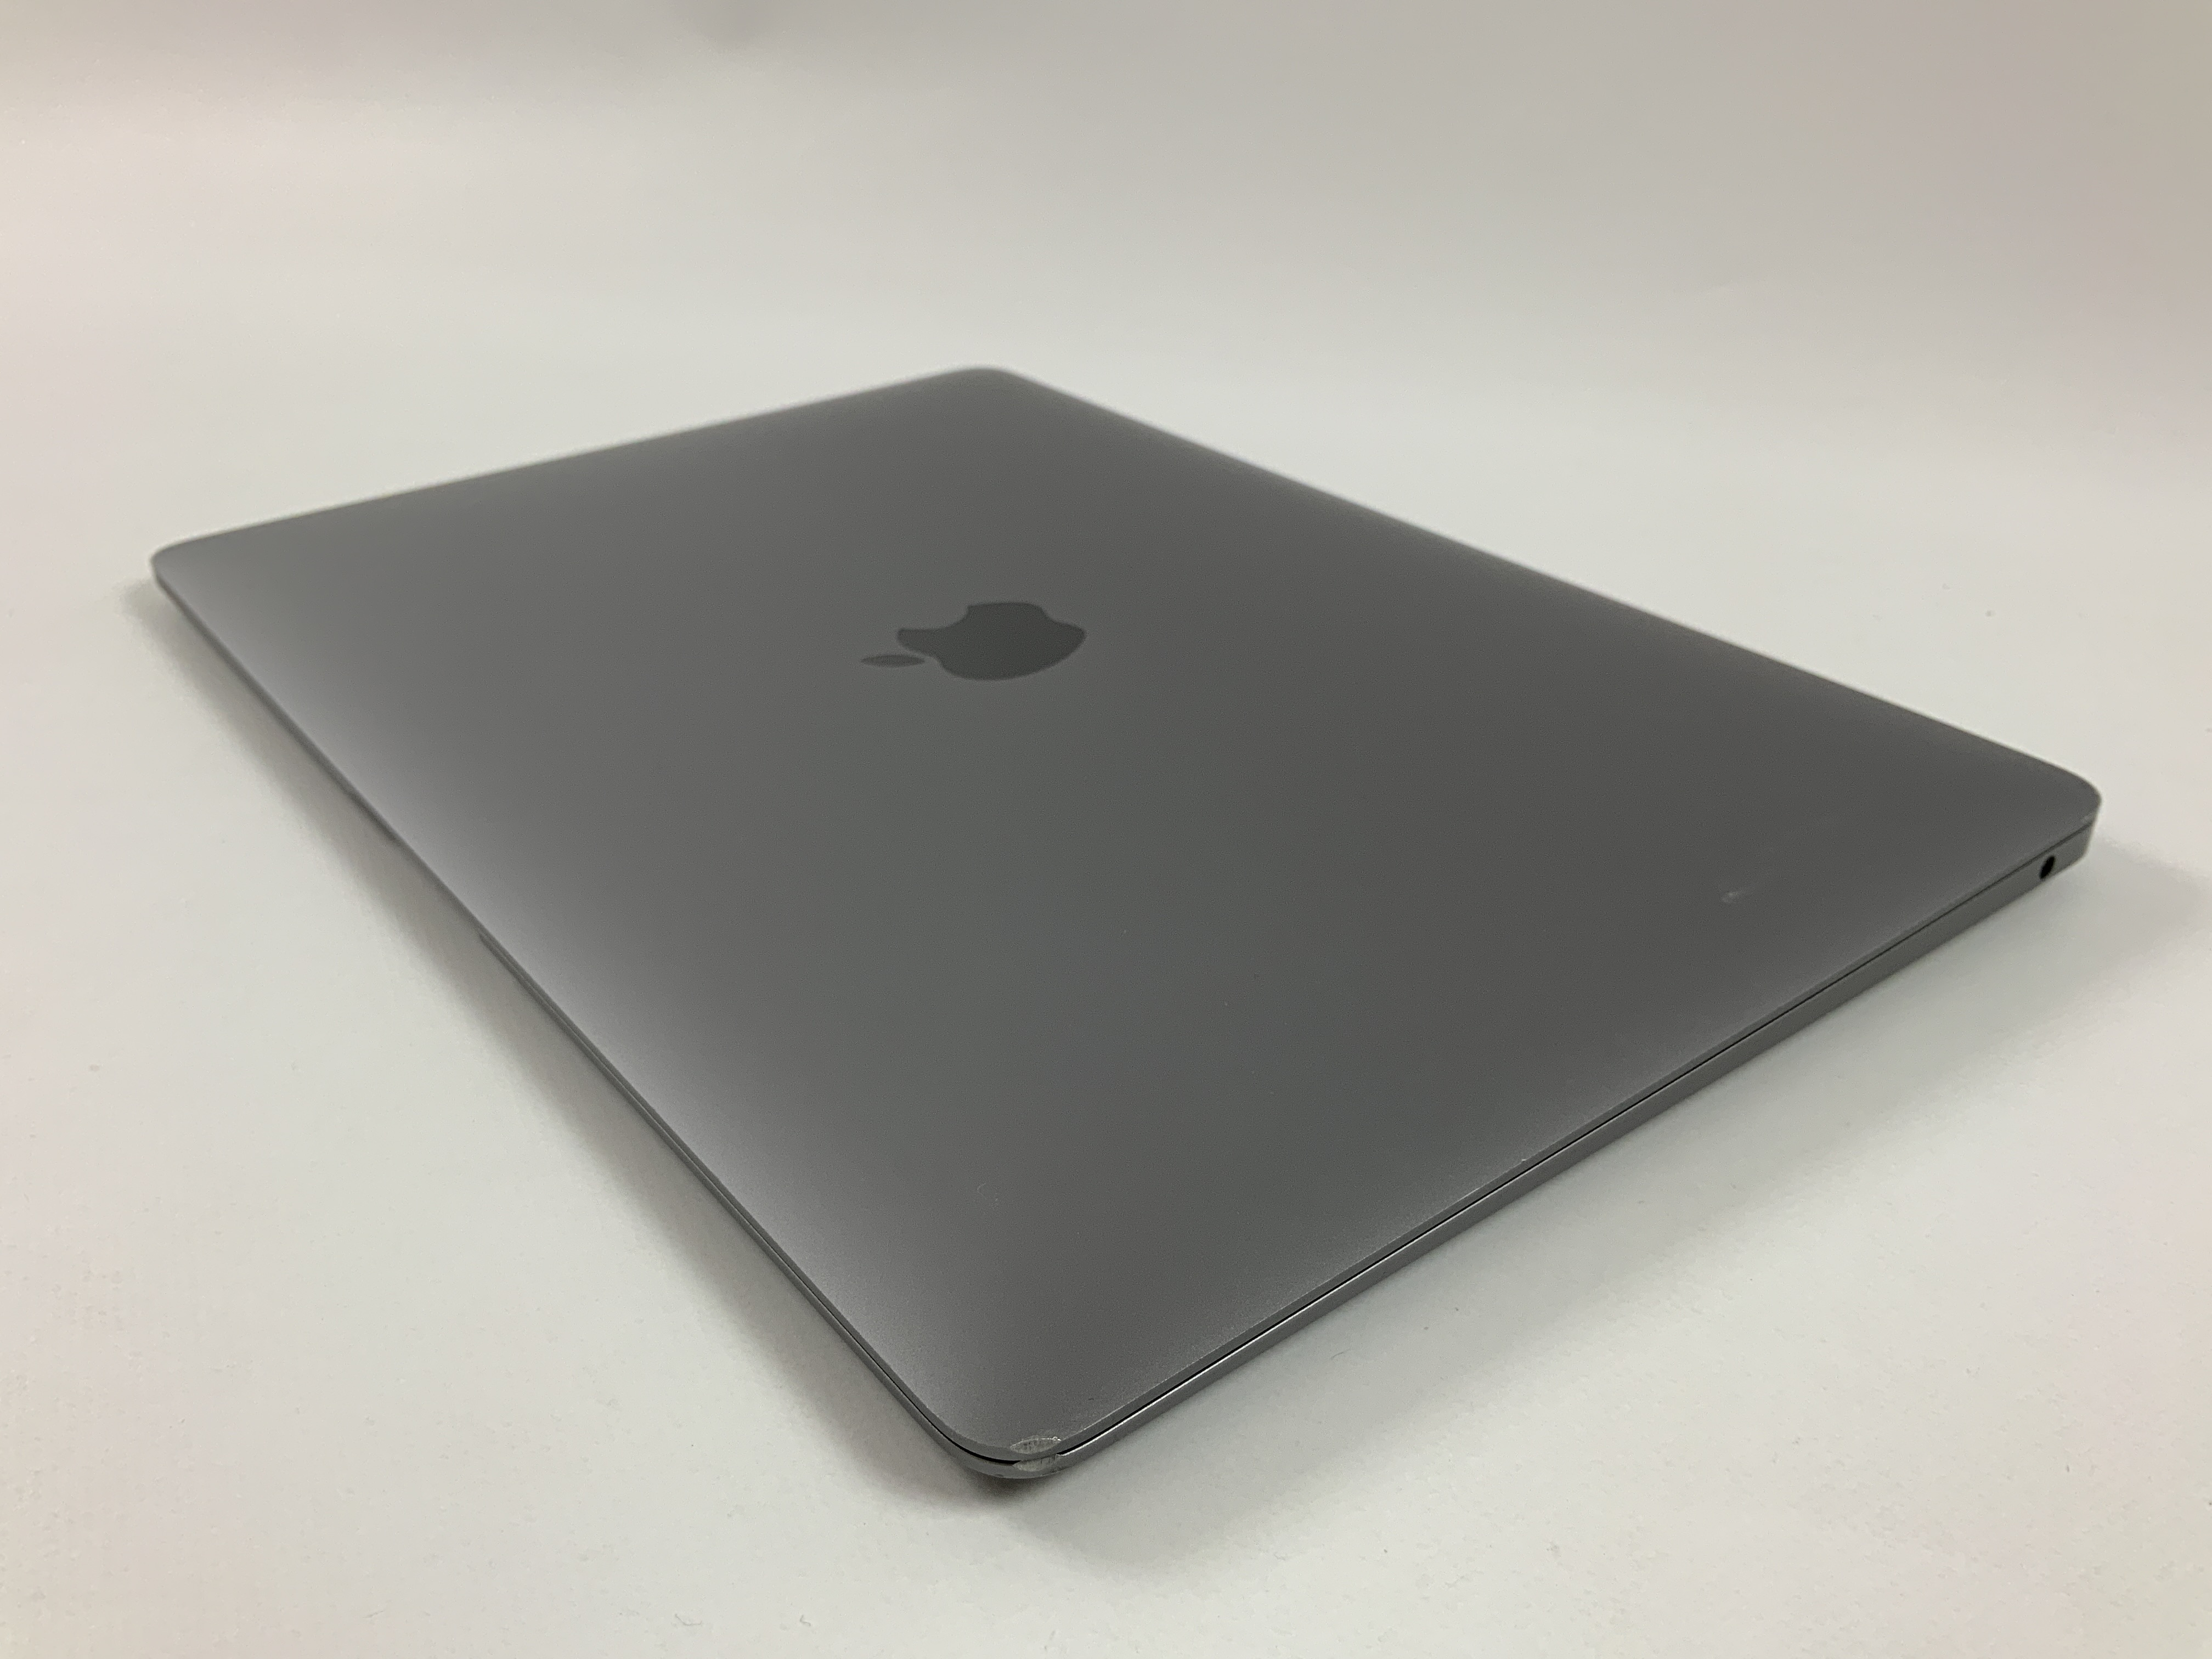 "MacBook Air 13"" Late 2018 (Intel Core i5 1.6 GHz 8 GB RAM 256 GB SSD), Space Gray, Intel Core i5 1.6 GHz, 8 GB RAM, 256 GB SSD, bild 3"